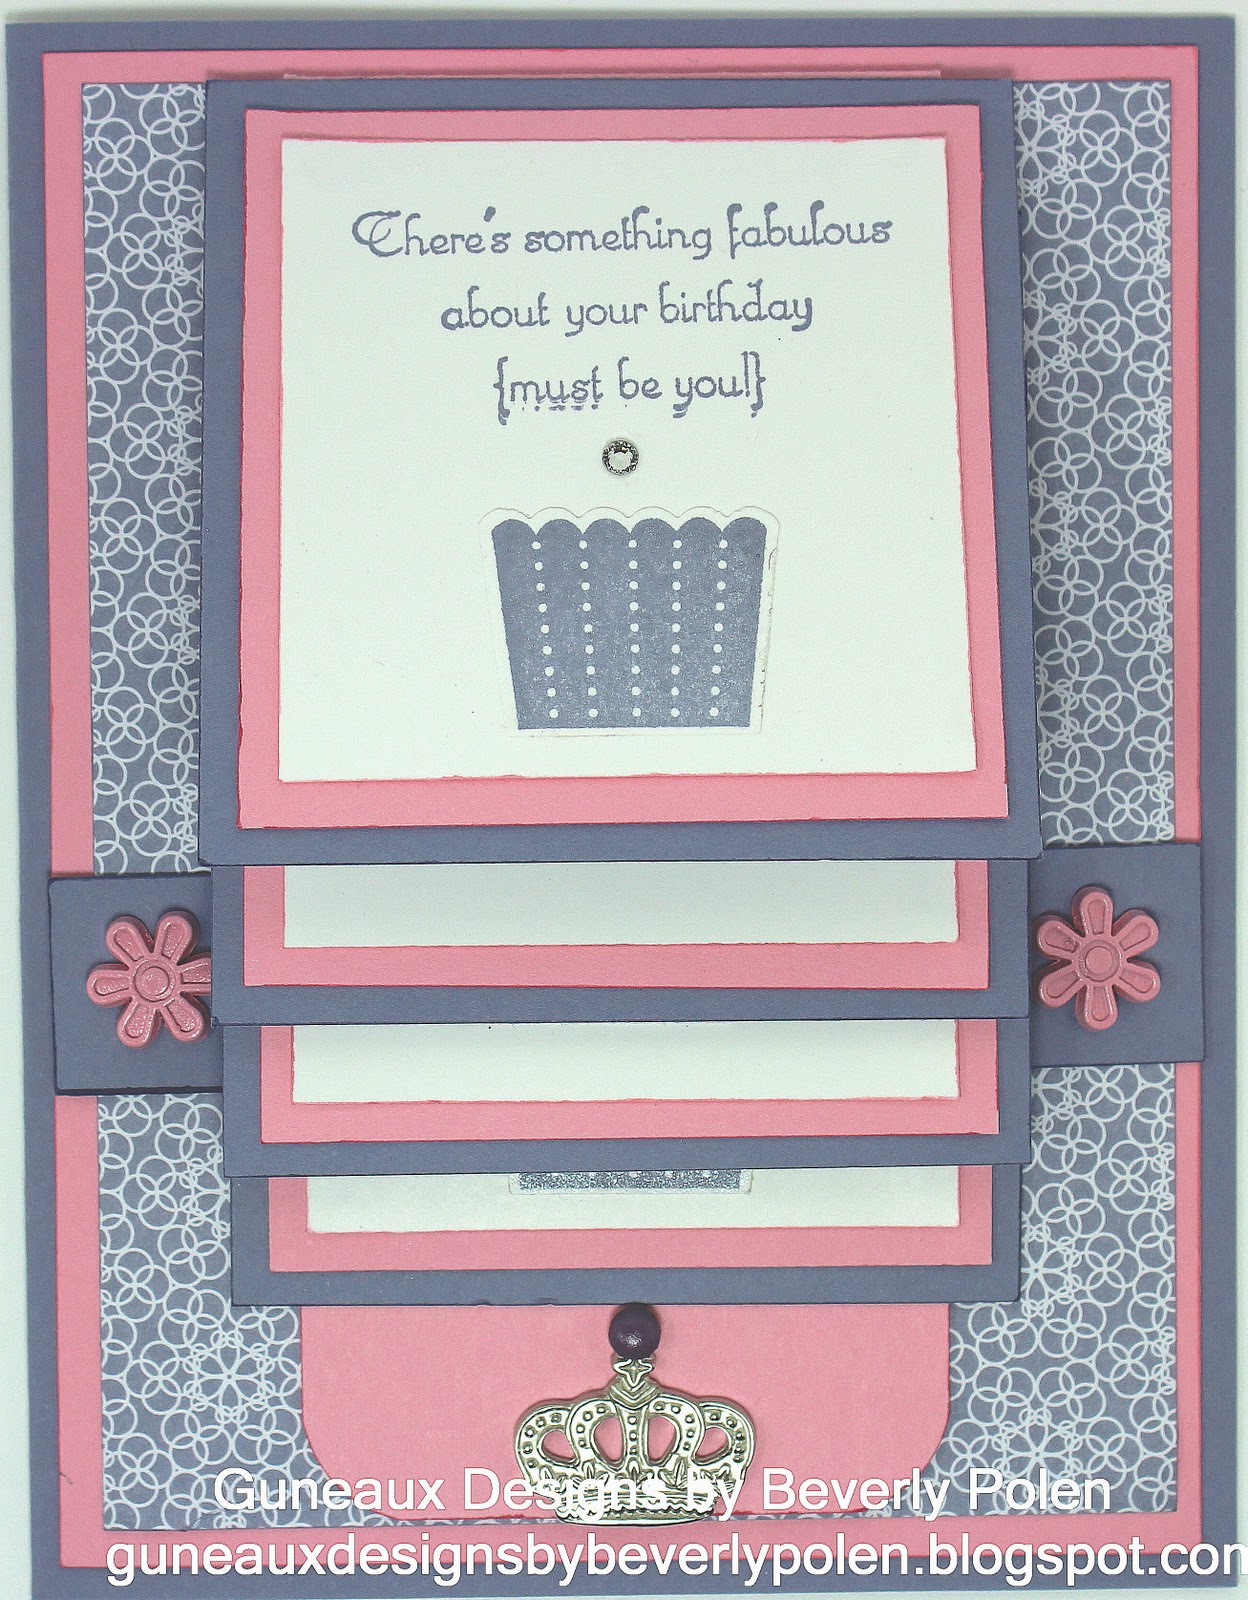 Guneaux designs by beverly polen how to make a waterfall for Waterfall design in scrapbook